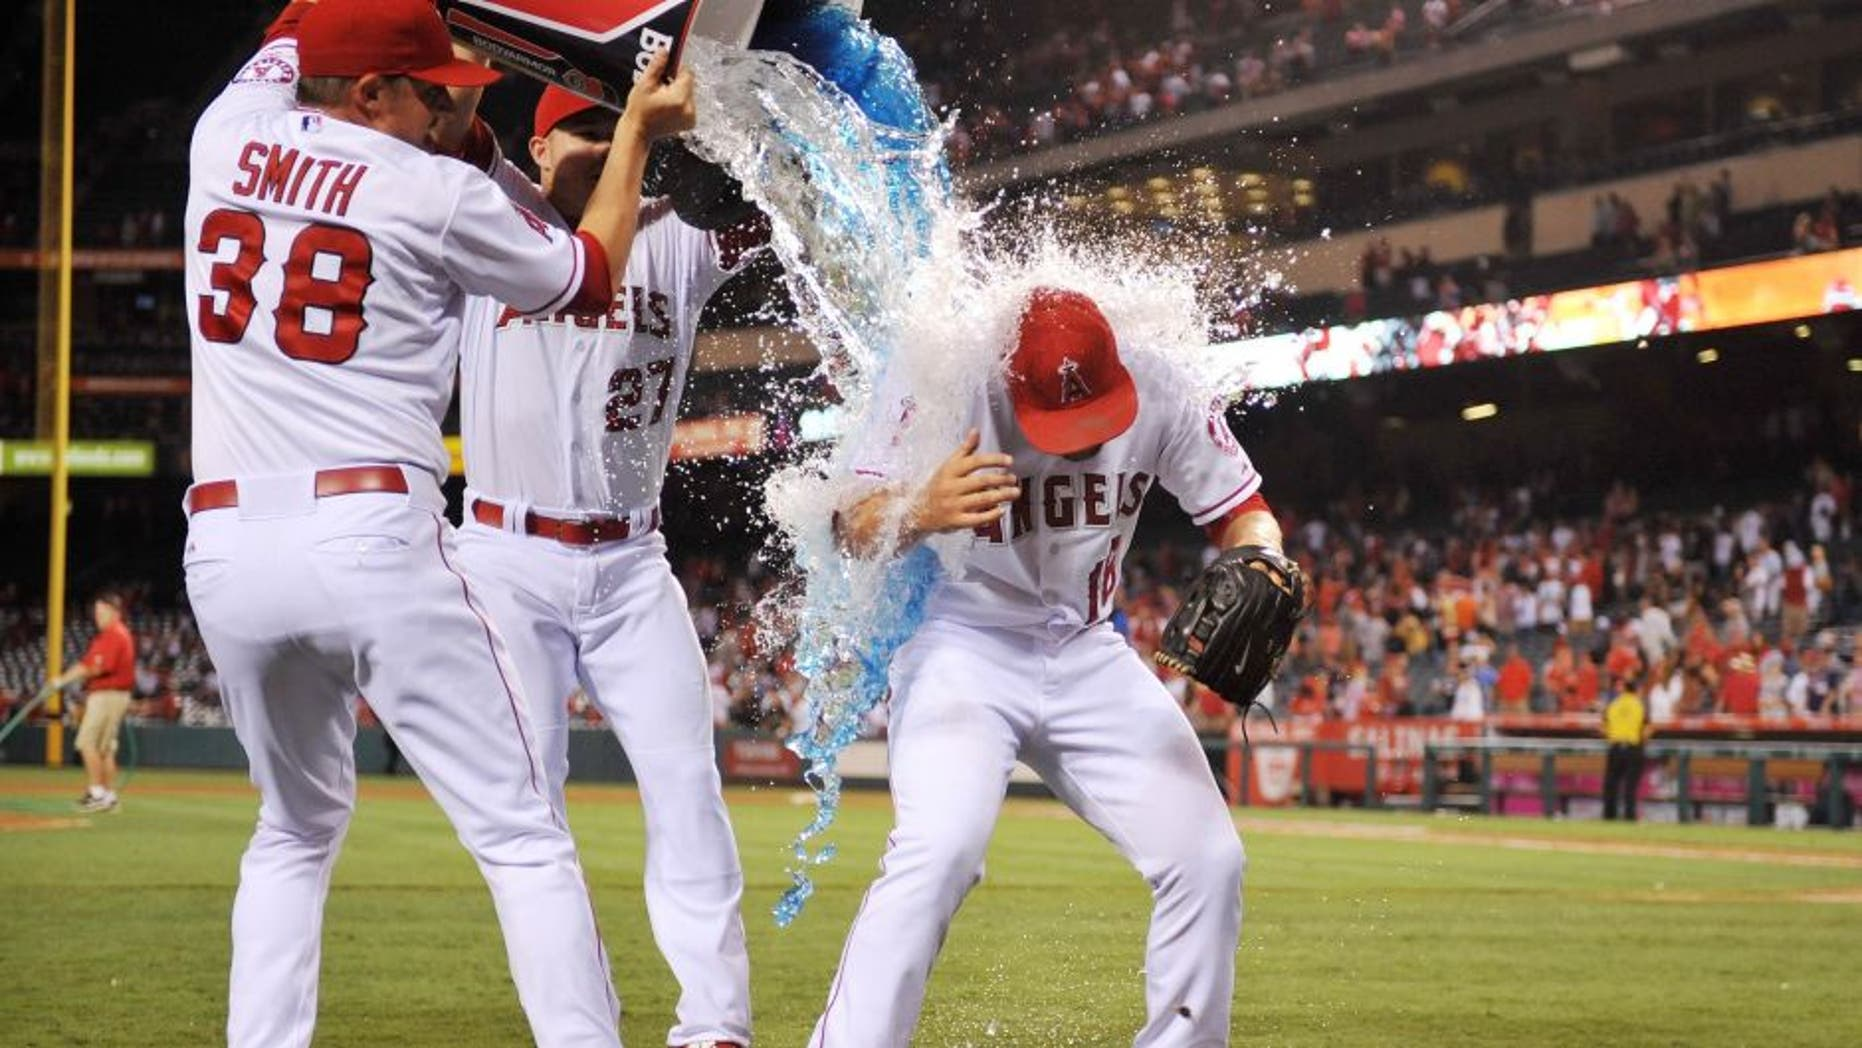 July 22, 2015; Anaheim, CA, USA; Los Angeles Angels relief pitcher Joe Smith (38) and center fielder Mike Trout (27) pour sport drink on relief pitcher Huston Street (16) in celebration of his 300th career save against the Minnesota Twins at Angel Stadium of Anaheim. Mandatory Credit: Gary A. Vasquez-USA TODAY Sports